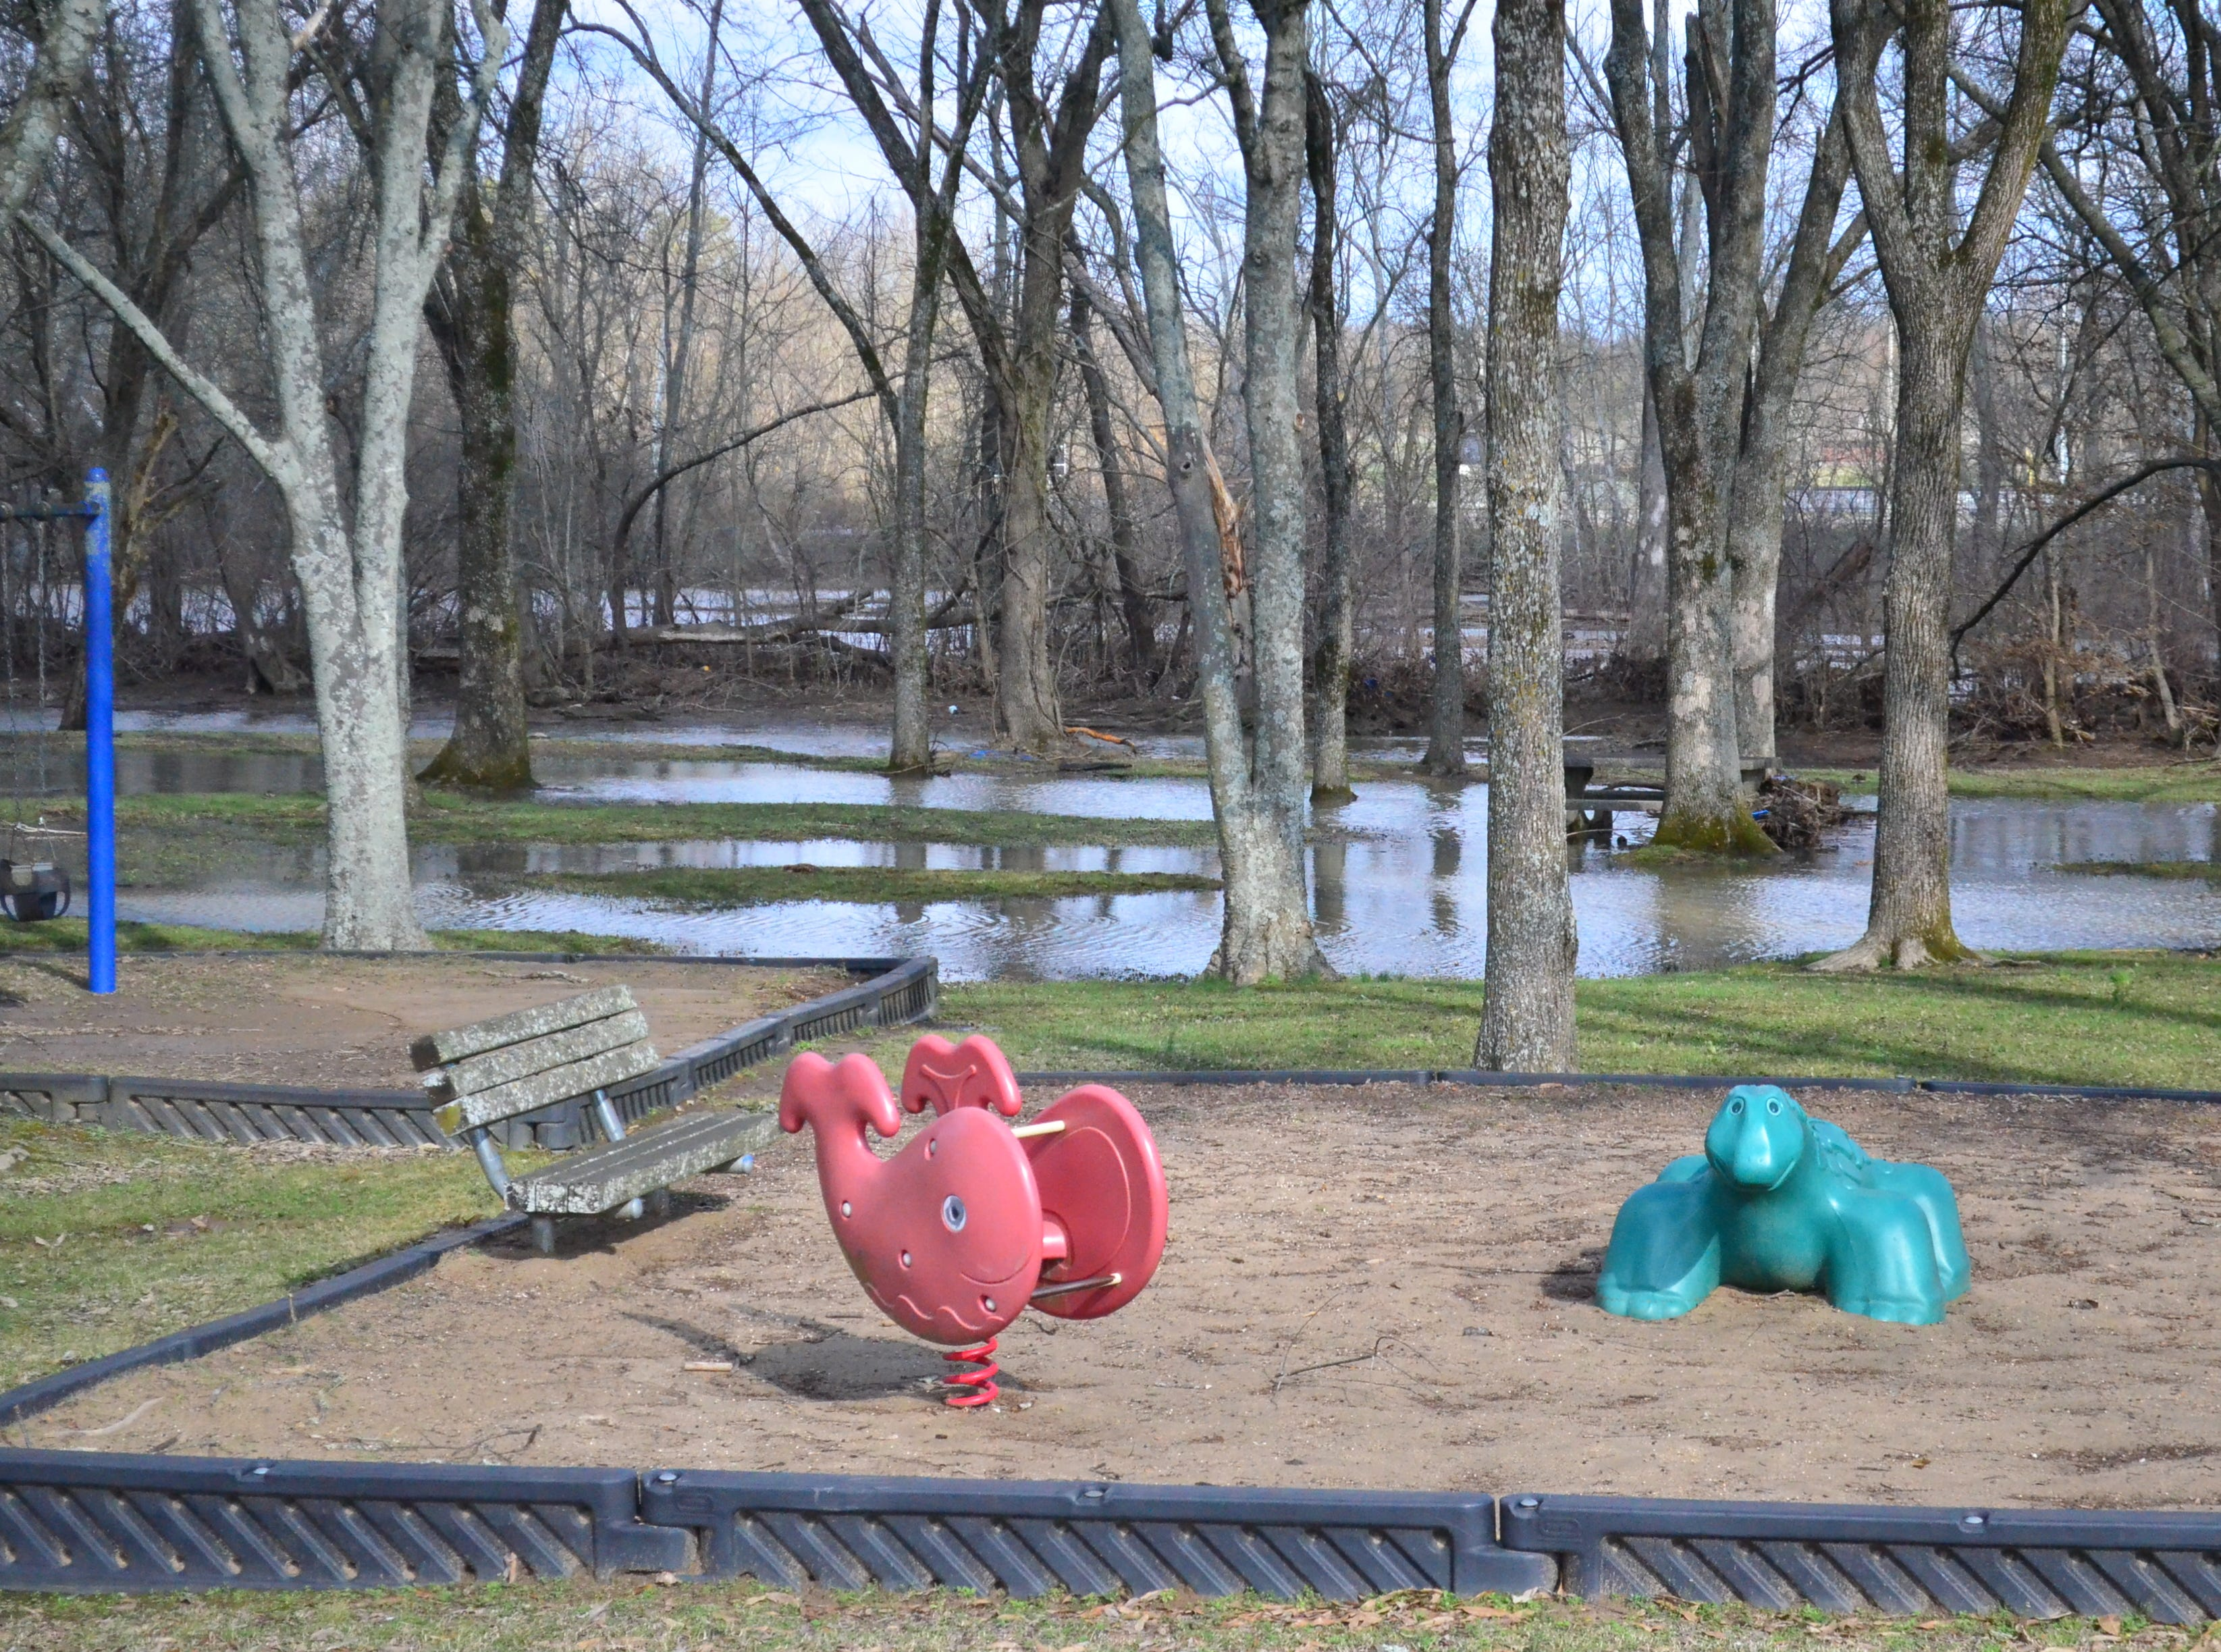 The playground at the front of Drakes Creek Park was flooded Sunday, Feb. 24, 2019.